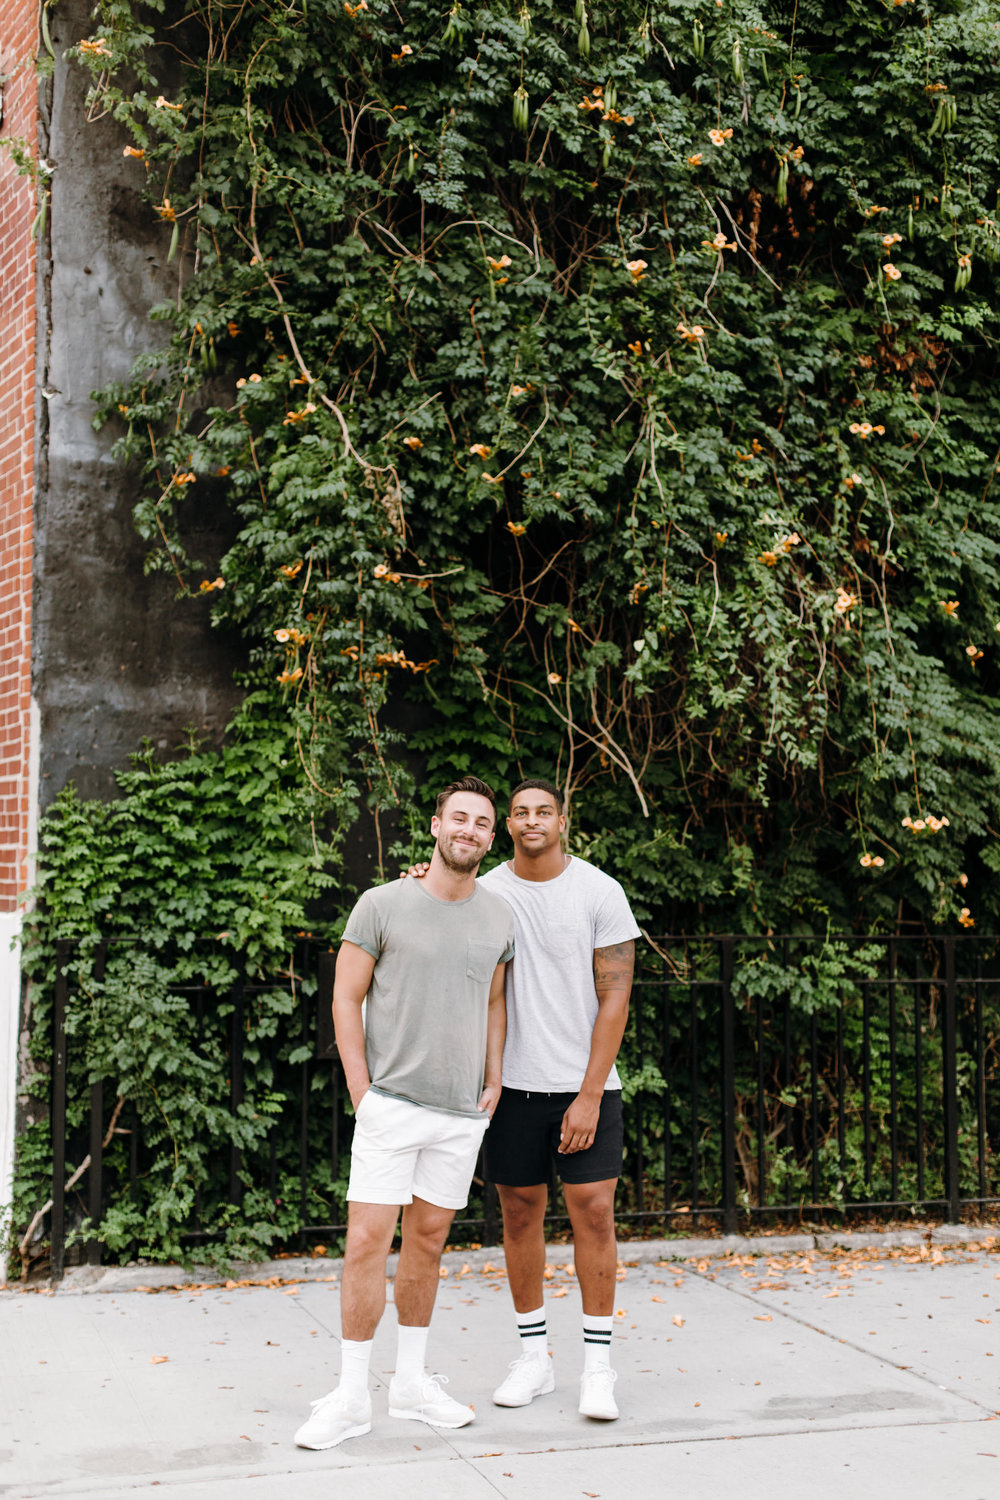 New York engagement photographer, NYC engagement photographer, Brooklyn engagement photographer, LGBTQ engagement photographer, New York engagement session, LGBTQ engagement session, LGBTQ engagement